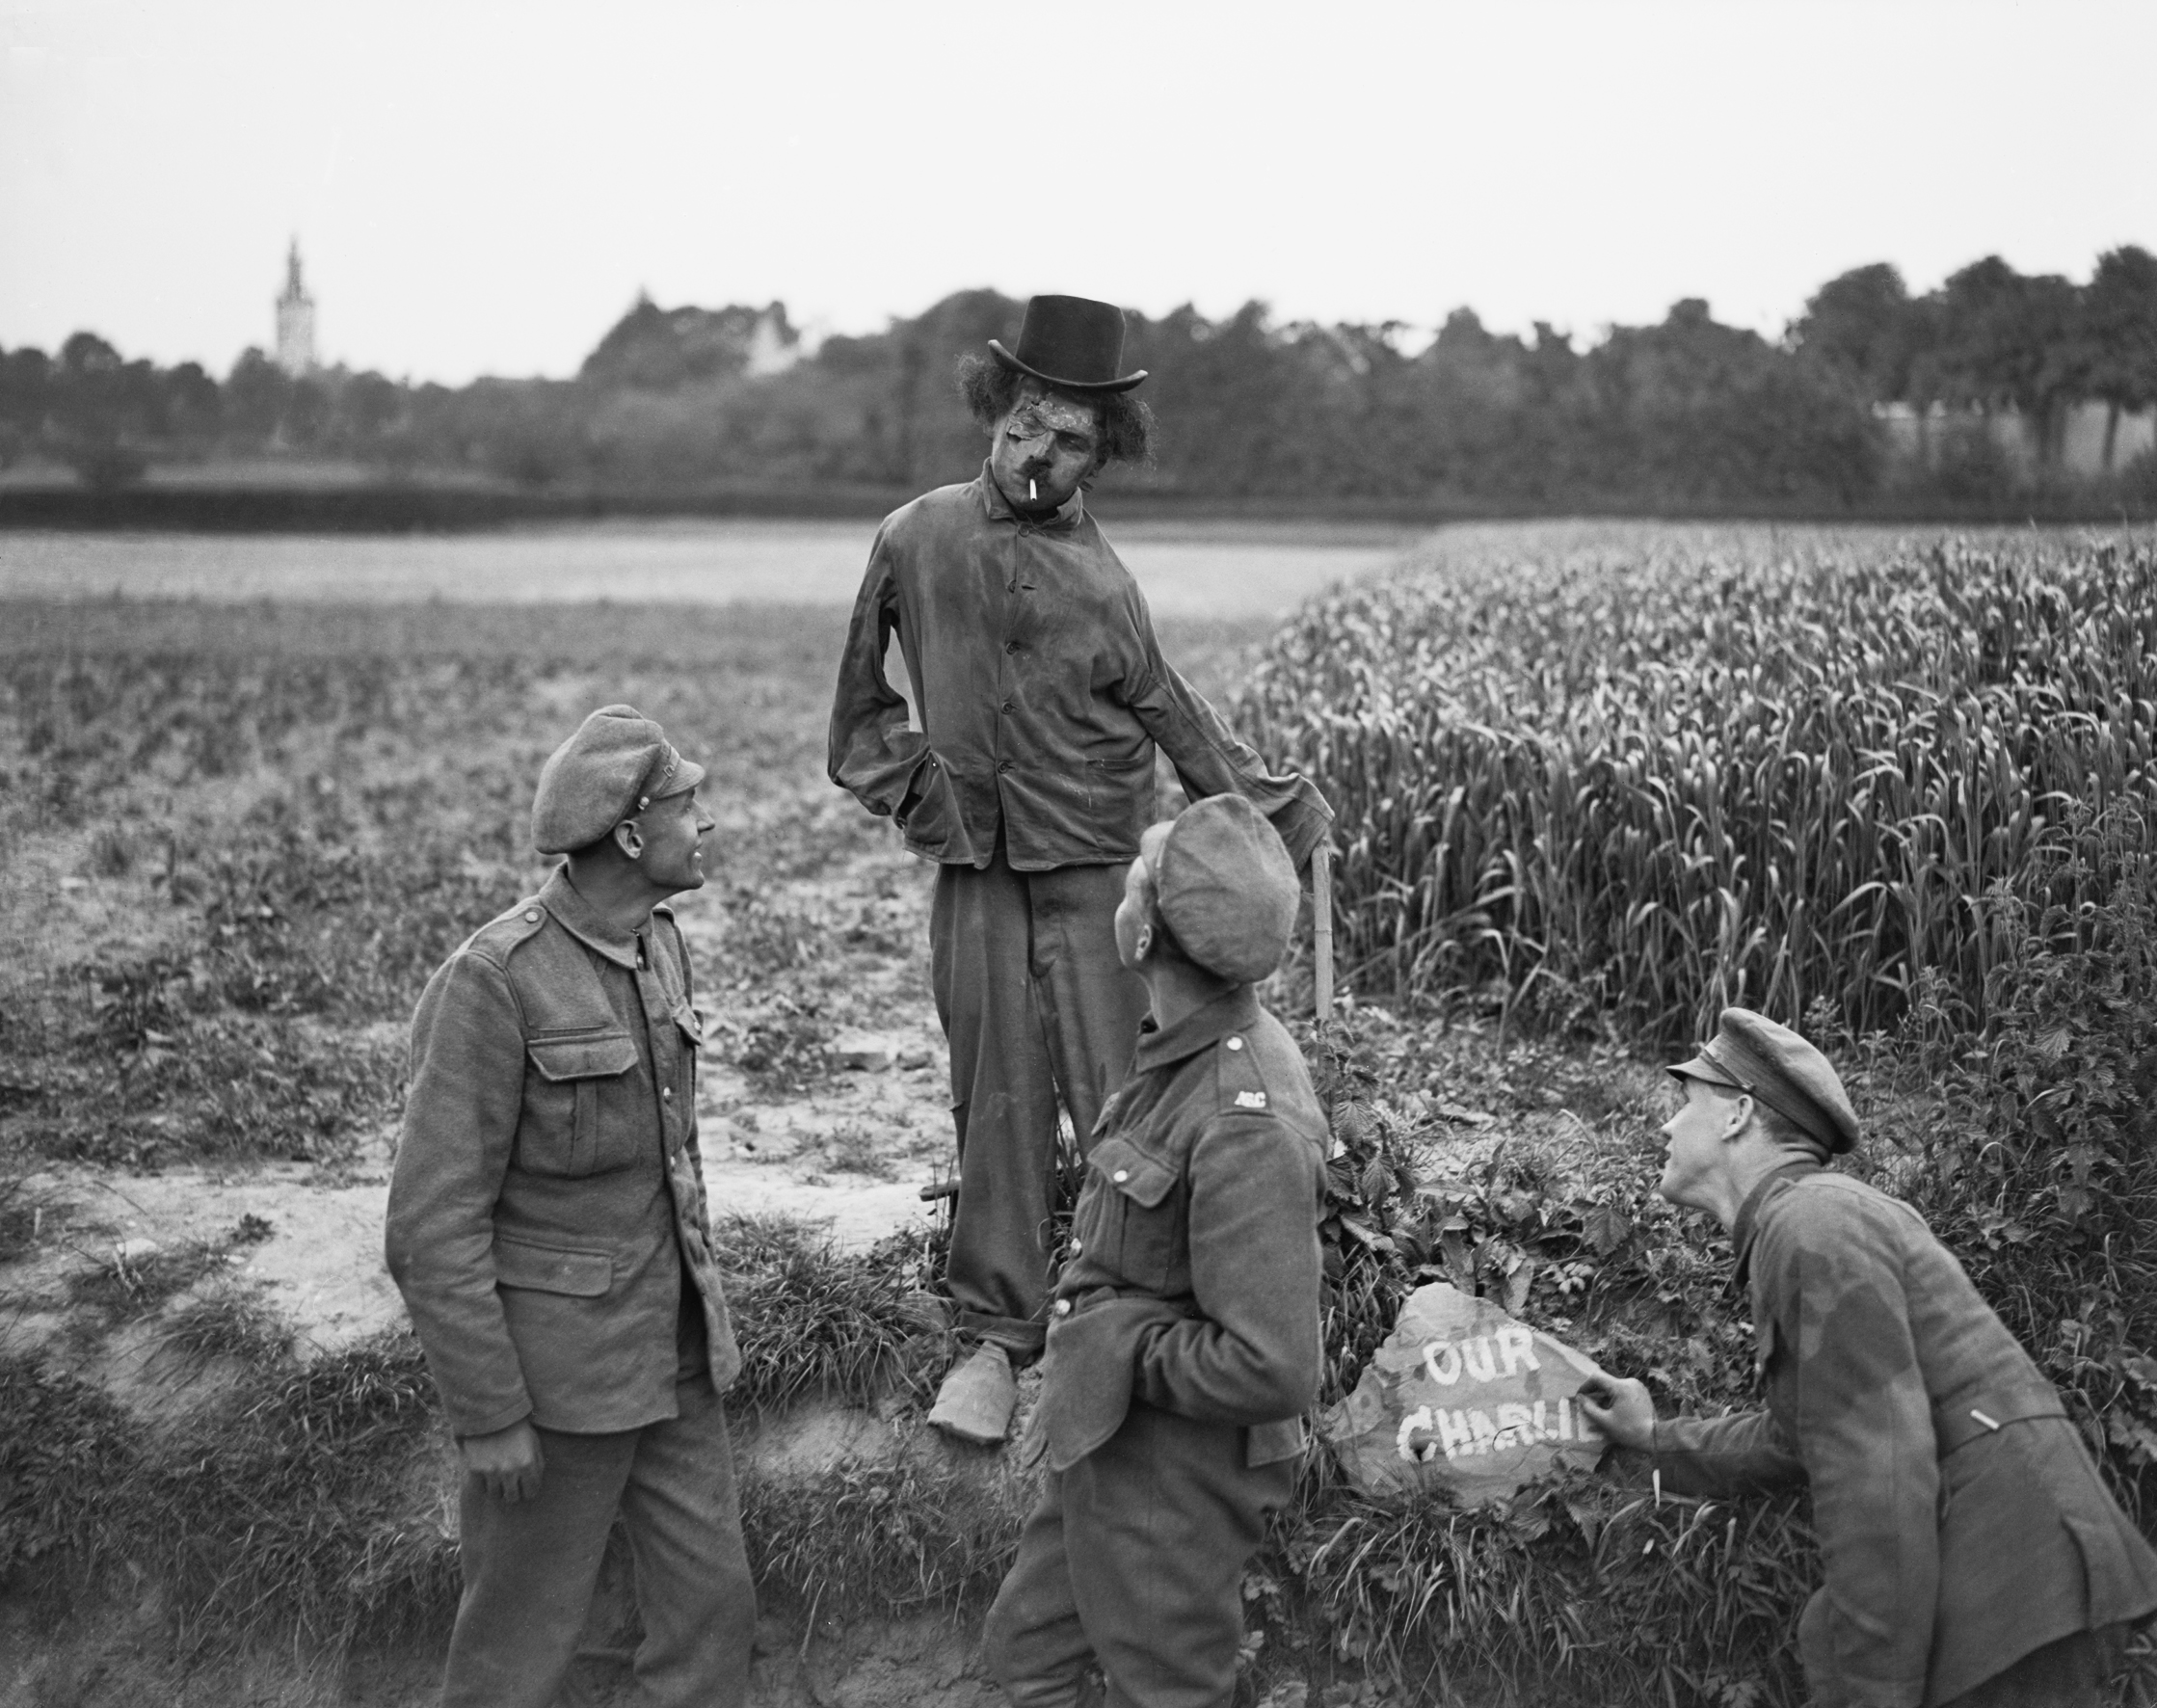 Figure representing Charlie Chaplin set up by the roadside at Watten by men of the A.S.C., M.T. Copyright IWM.